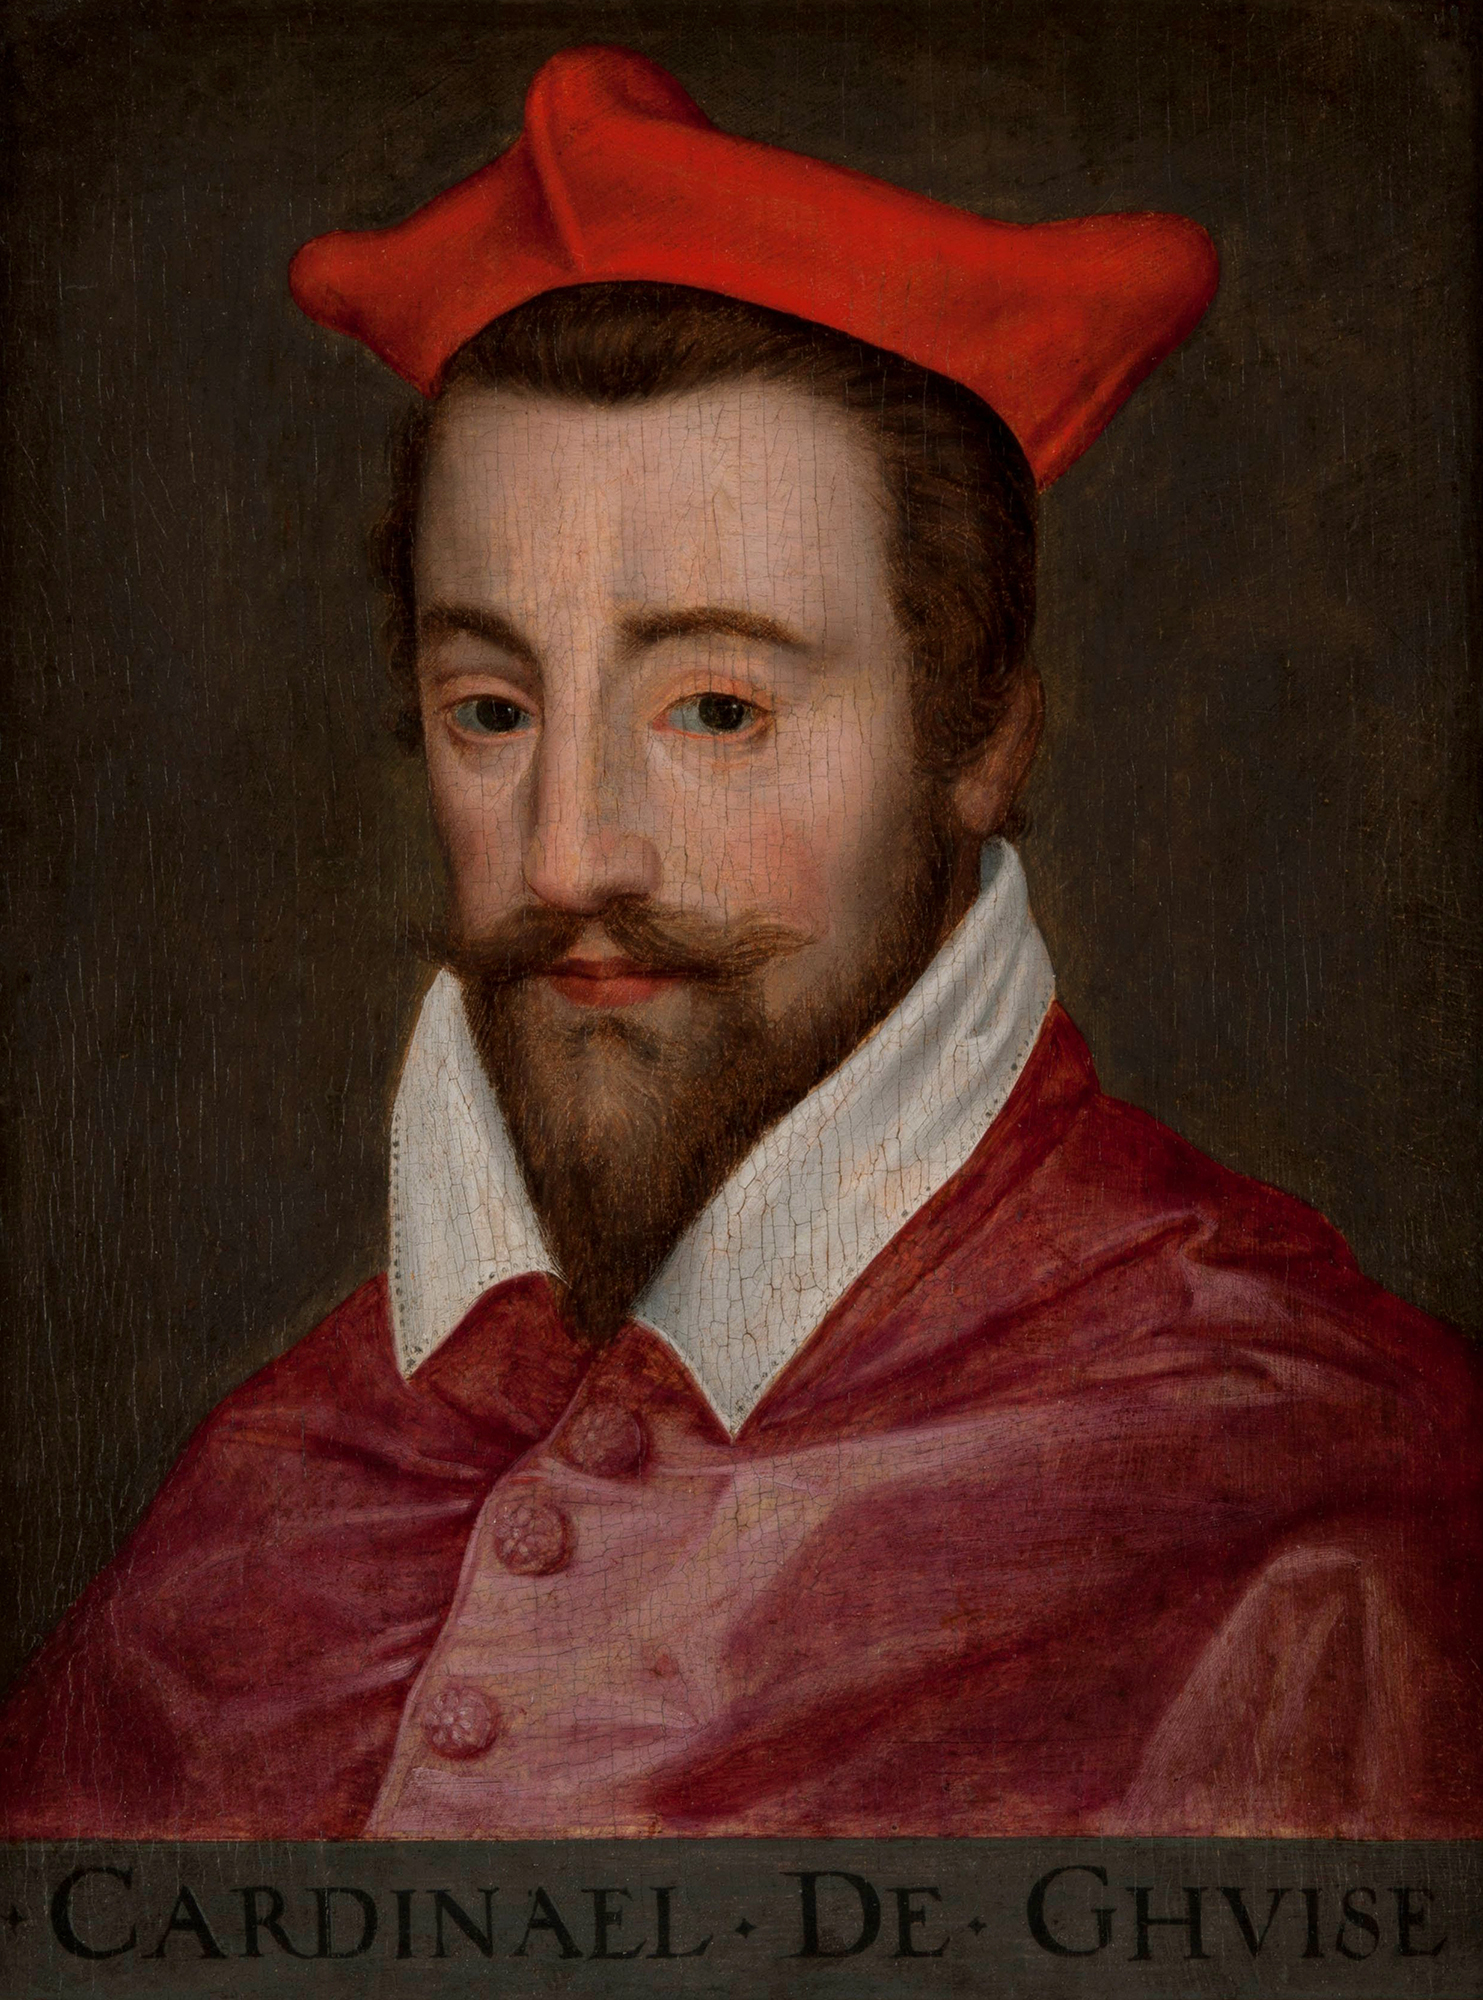 Portrait of Louis II de Lorraine (1555-1588), Cardinal of Guise (1578), Archbishop of Reims (1574-1588) | Portraits of Kings